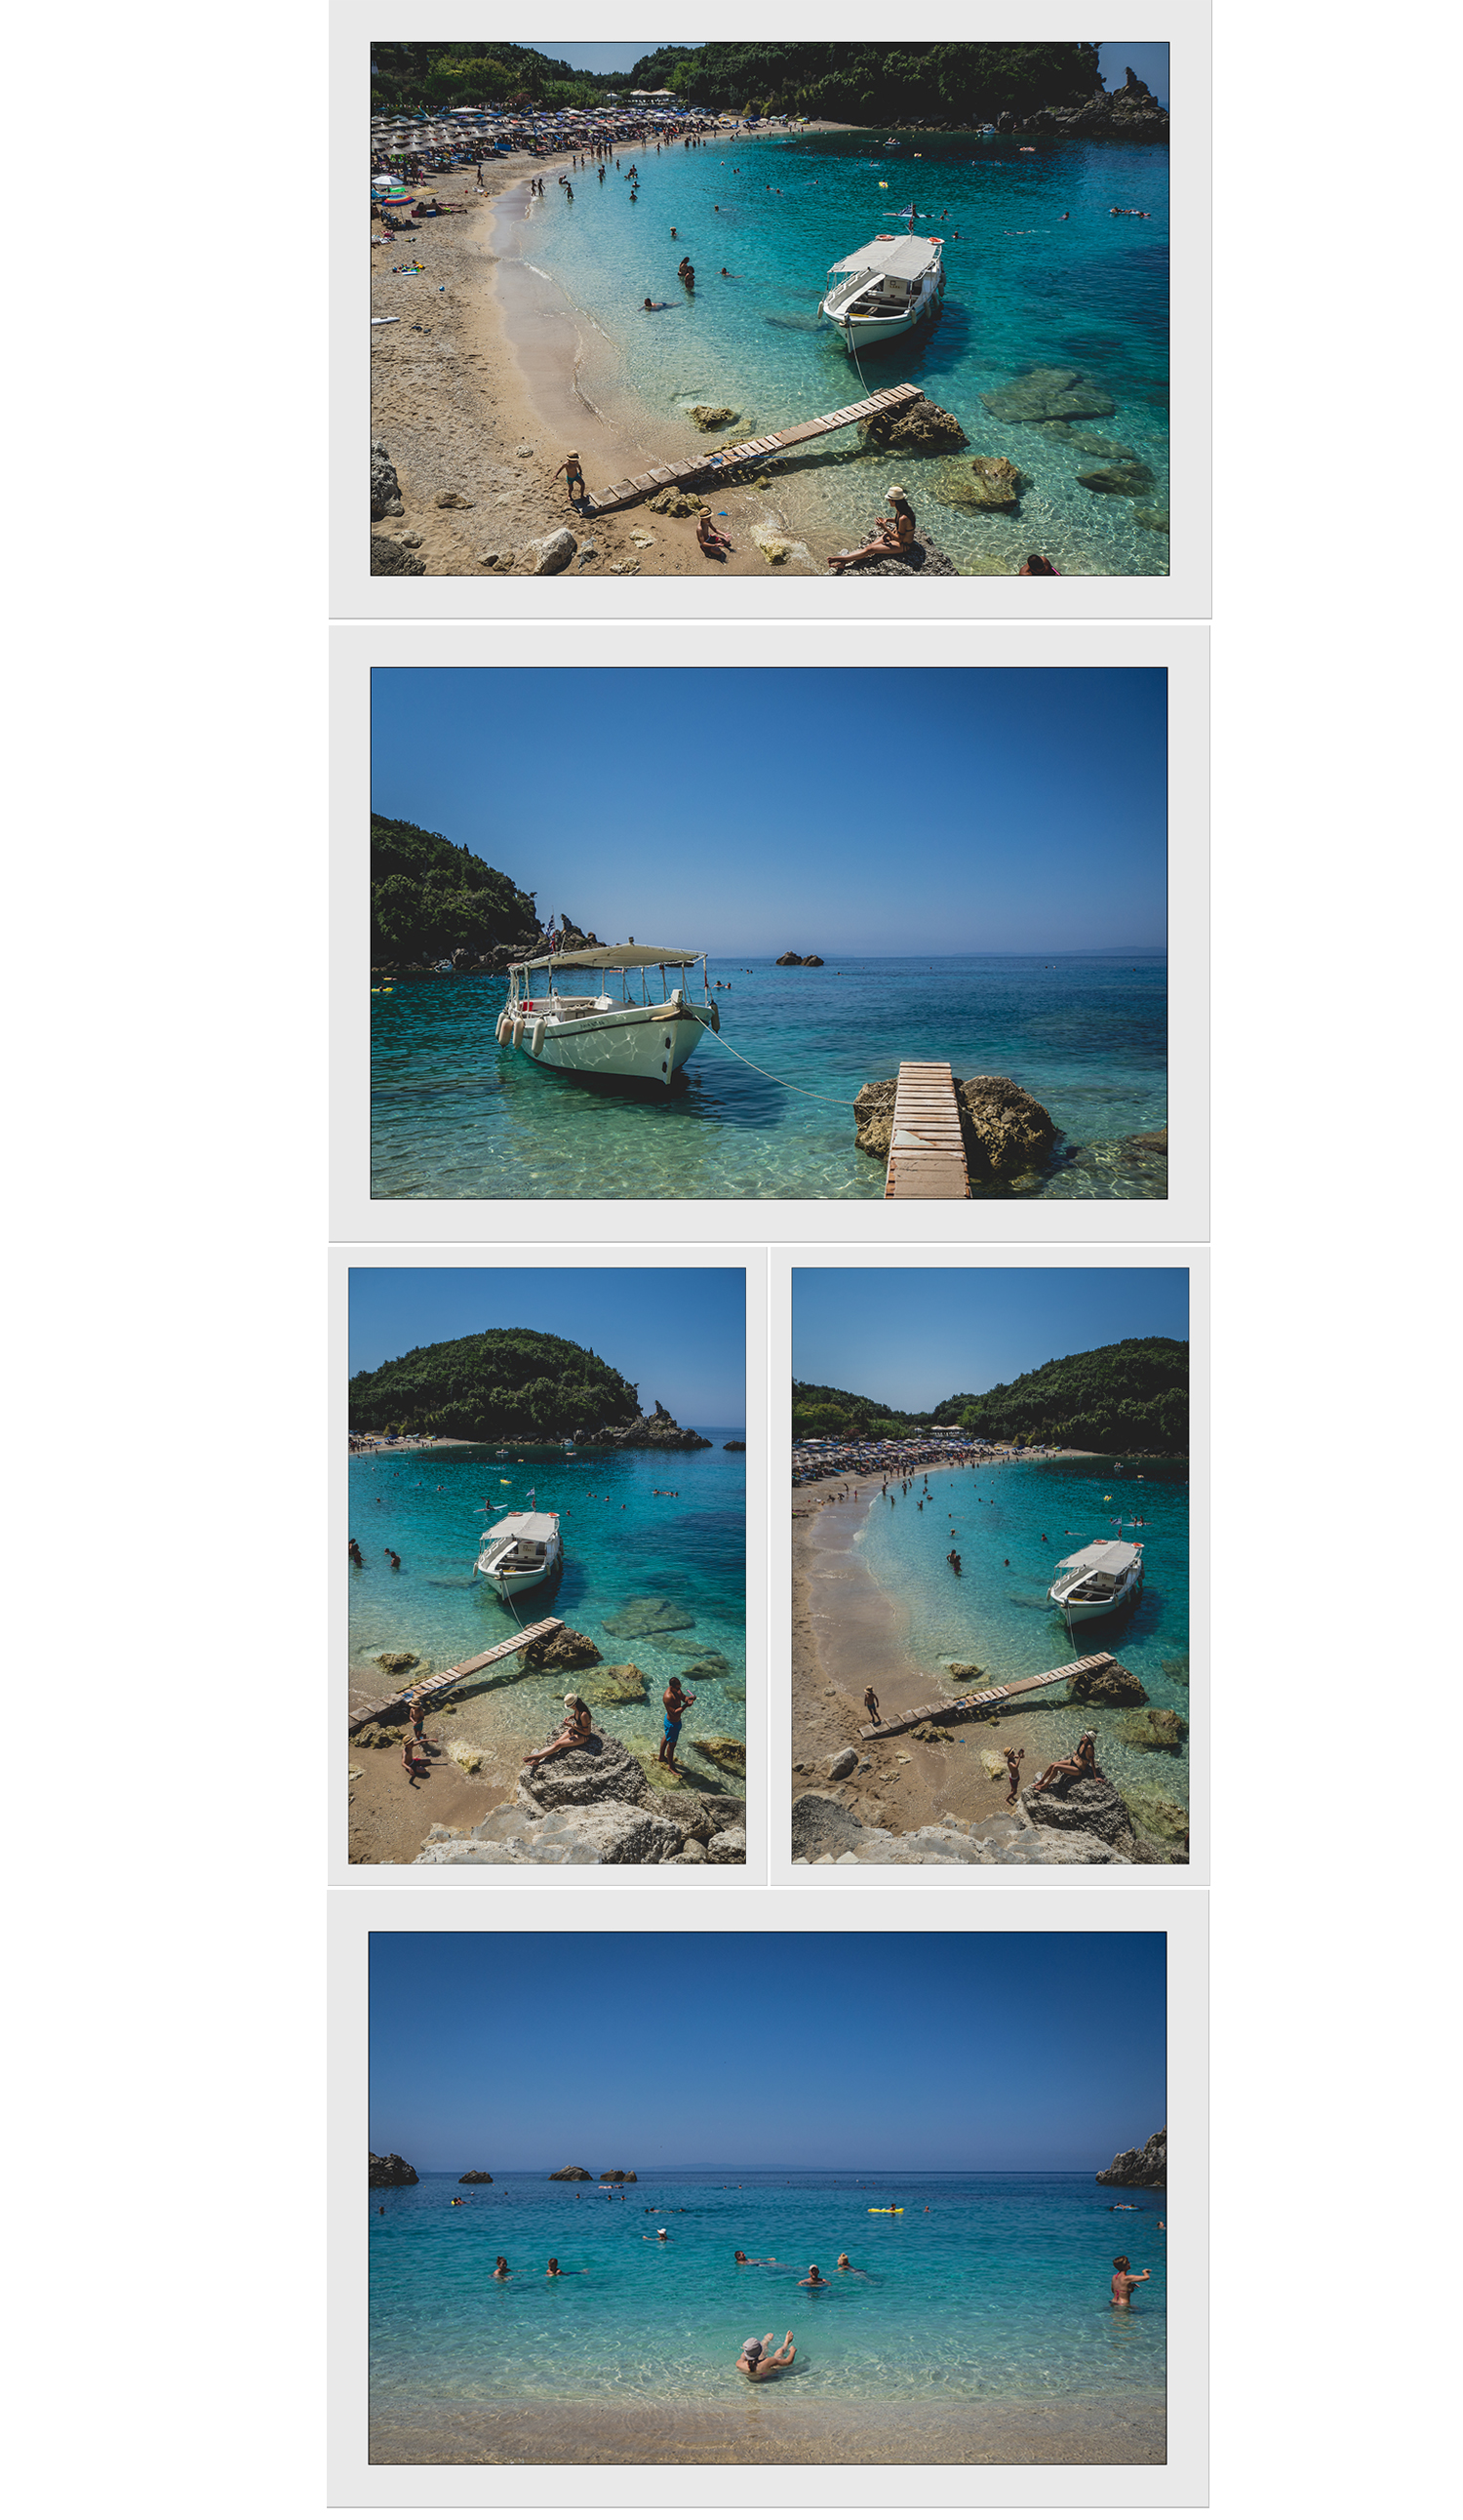 PARGA_33_IOANNIS_ANDRIOPOULOS_PHOTOGRAPHY_GREECE